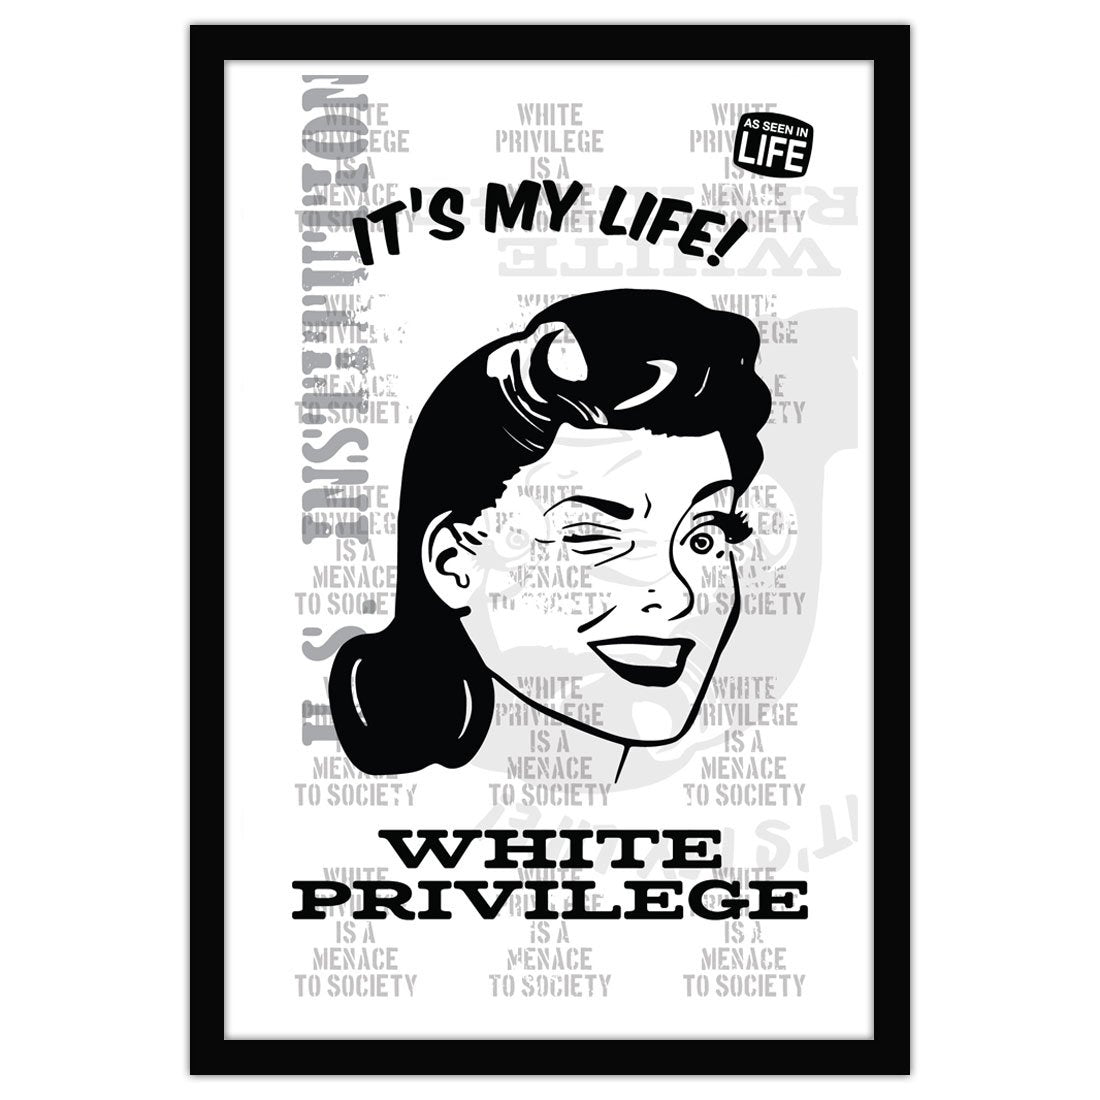 David Bernie Shop Fine Art Print Poster 11x17 18x24 36x48 White Privilege It's My Life